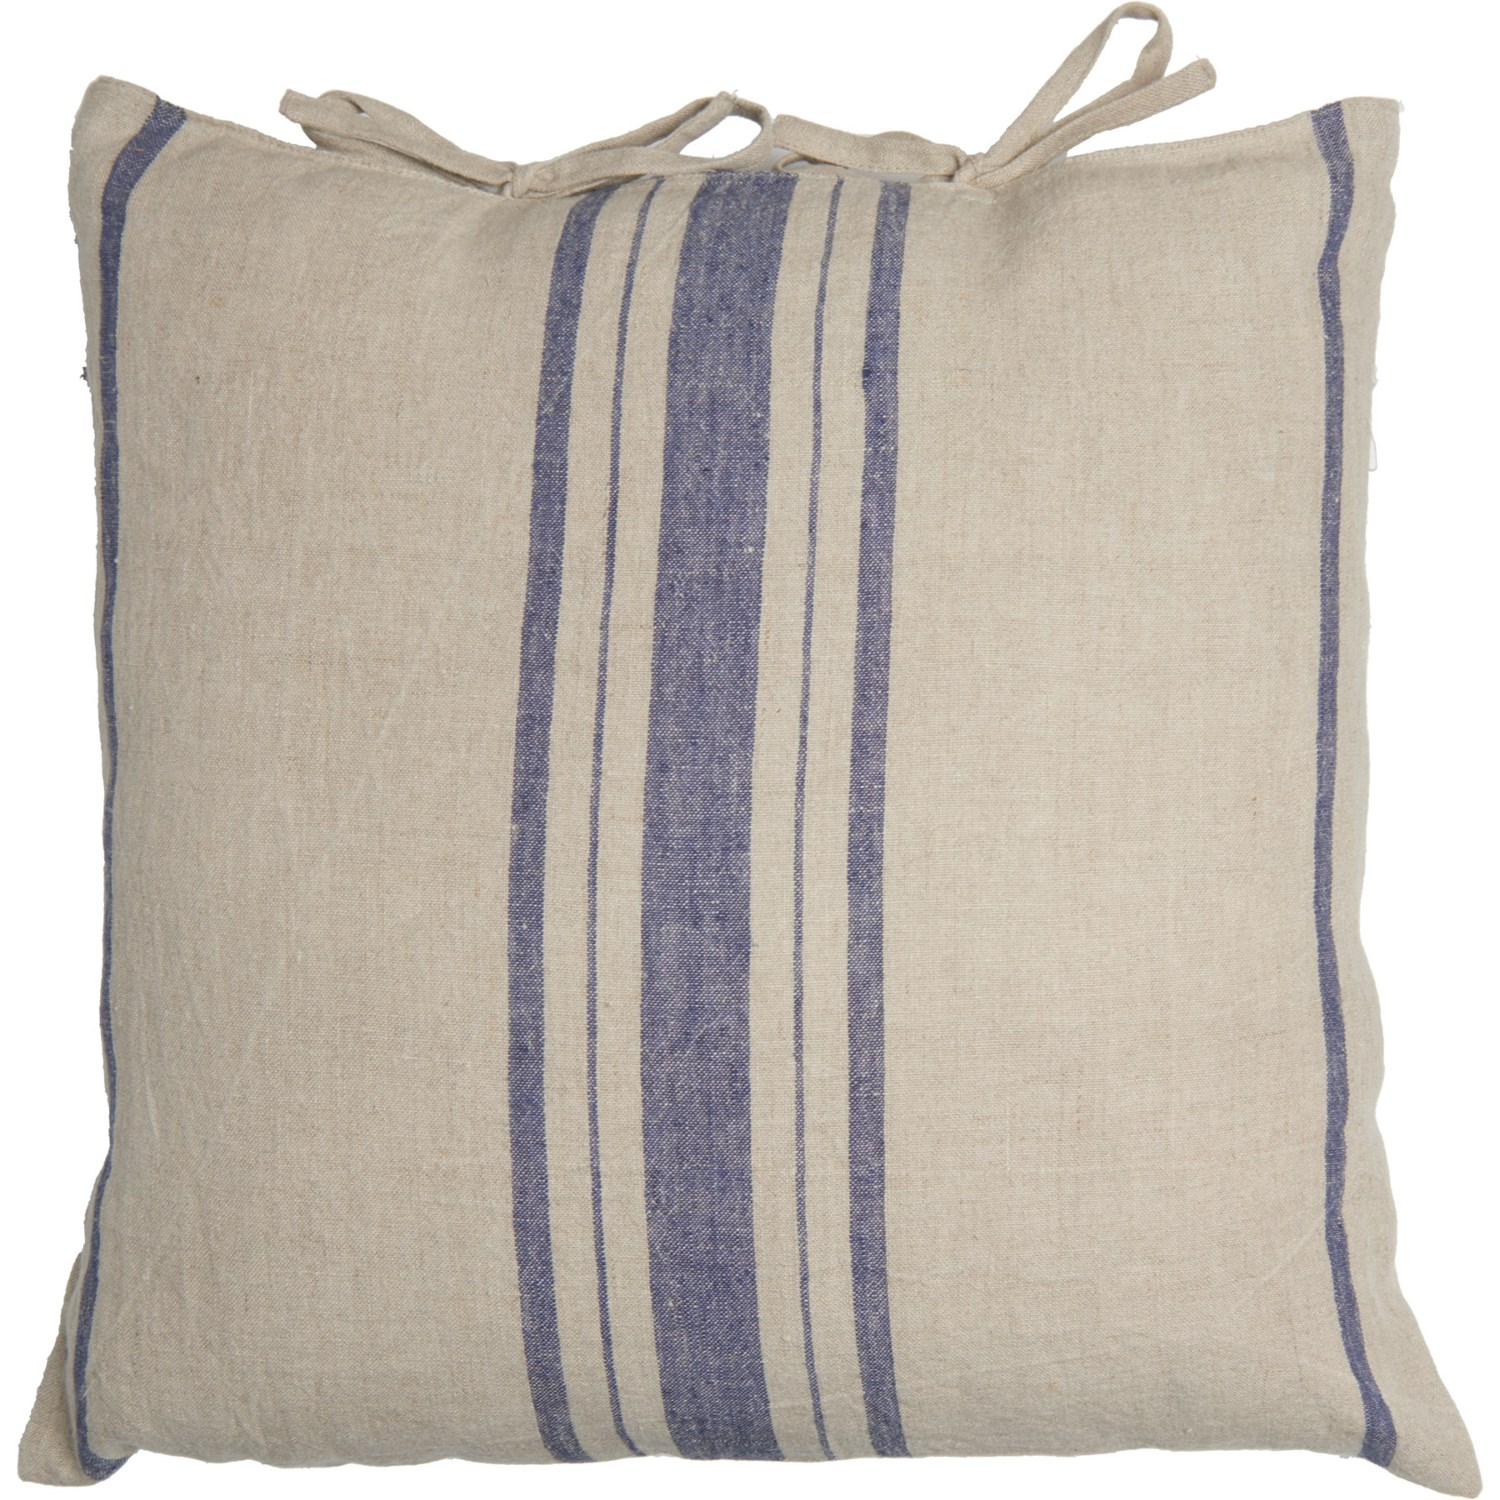 Outstanding Fiddle Fern Linen Yarn Dyed Striped Throw Pillow 18X18 Gmtry Best Dining Table And Chair Ideas Images Gmtryco